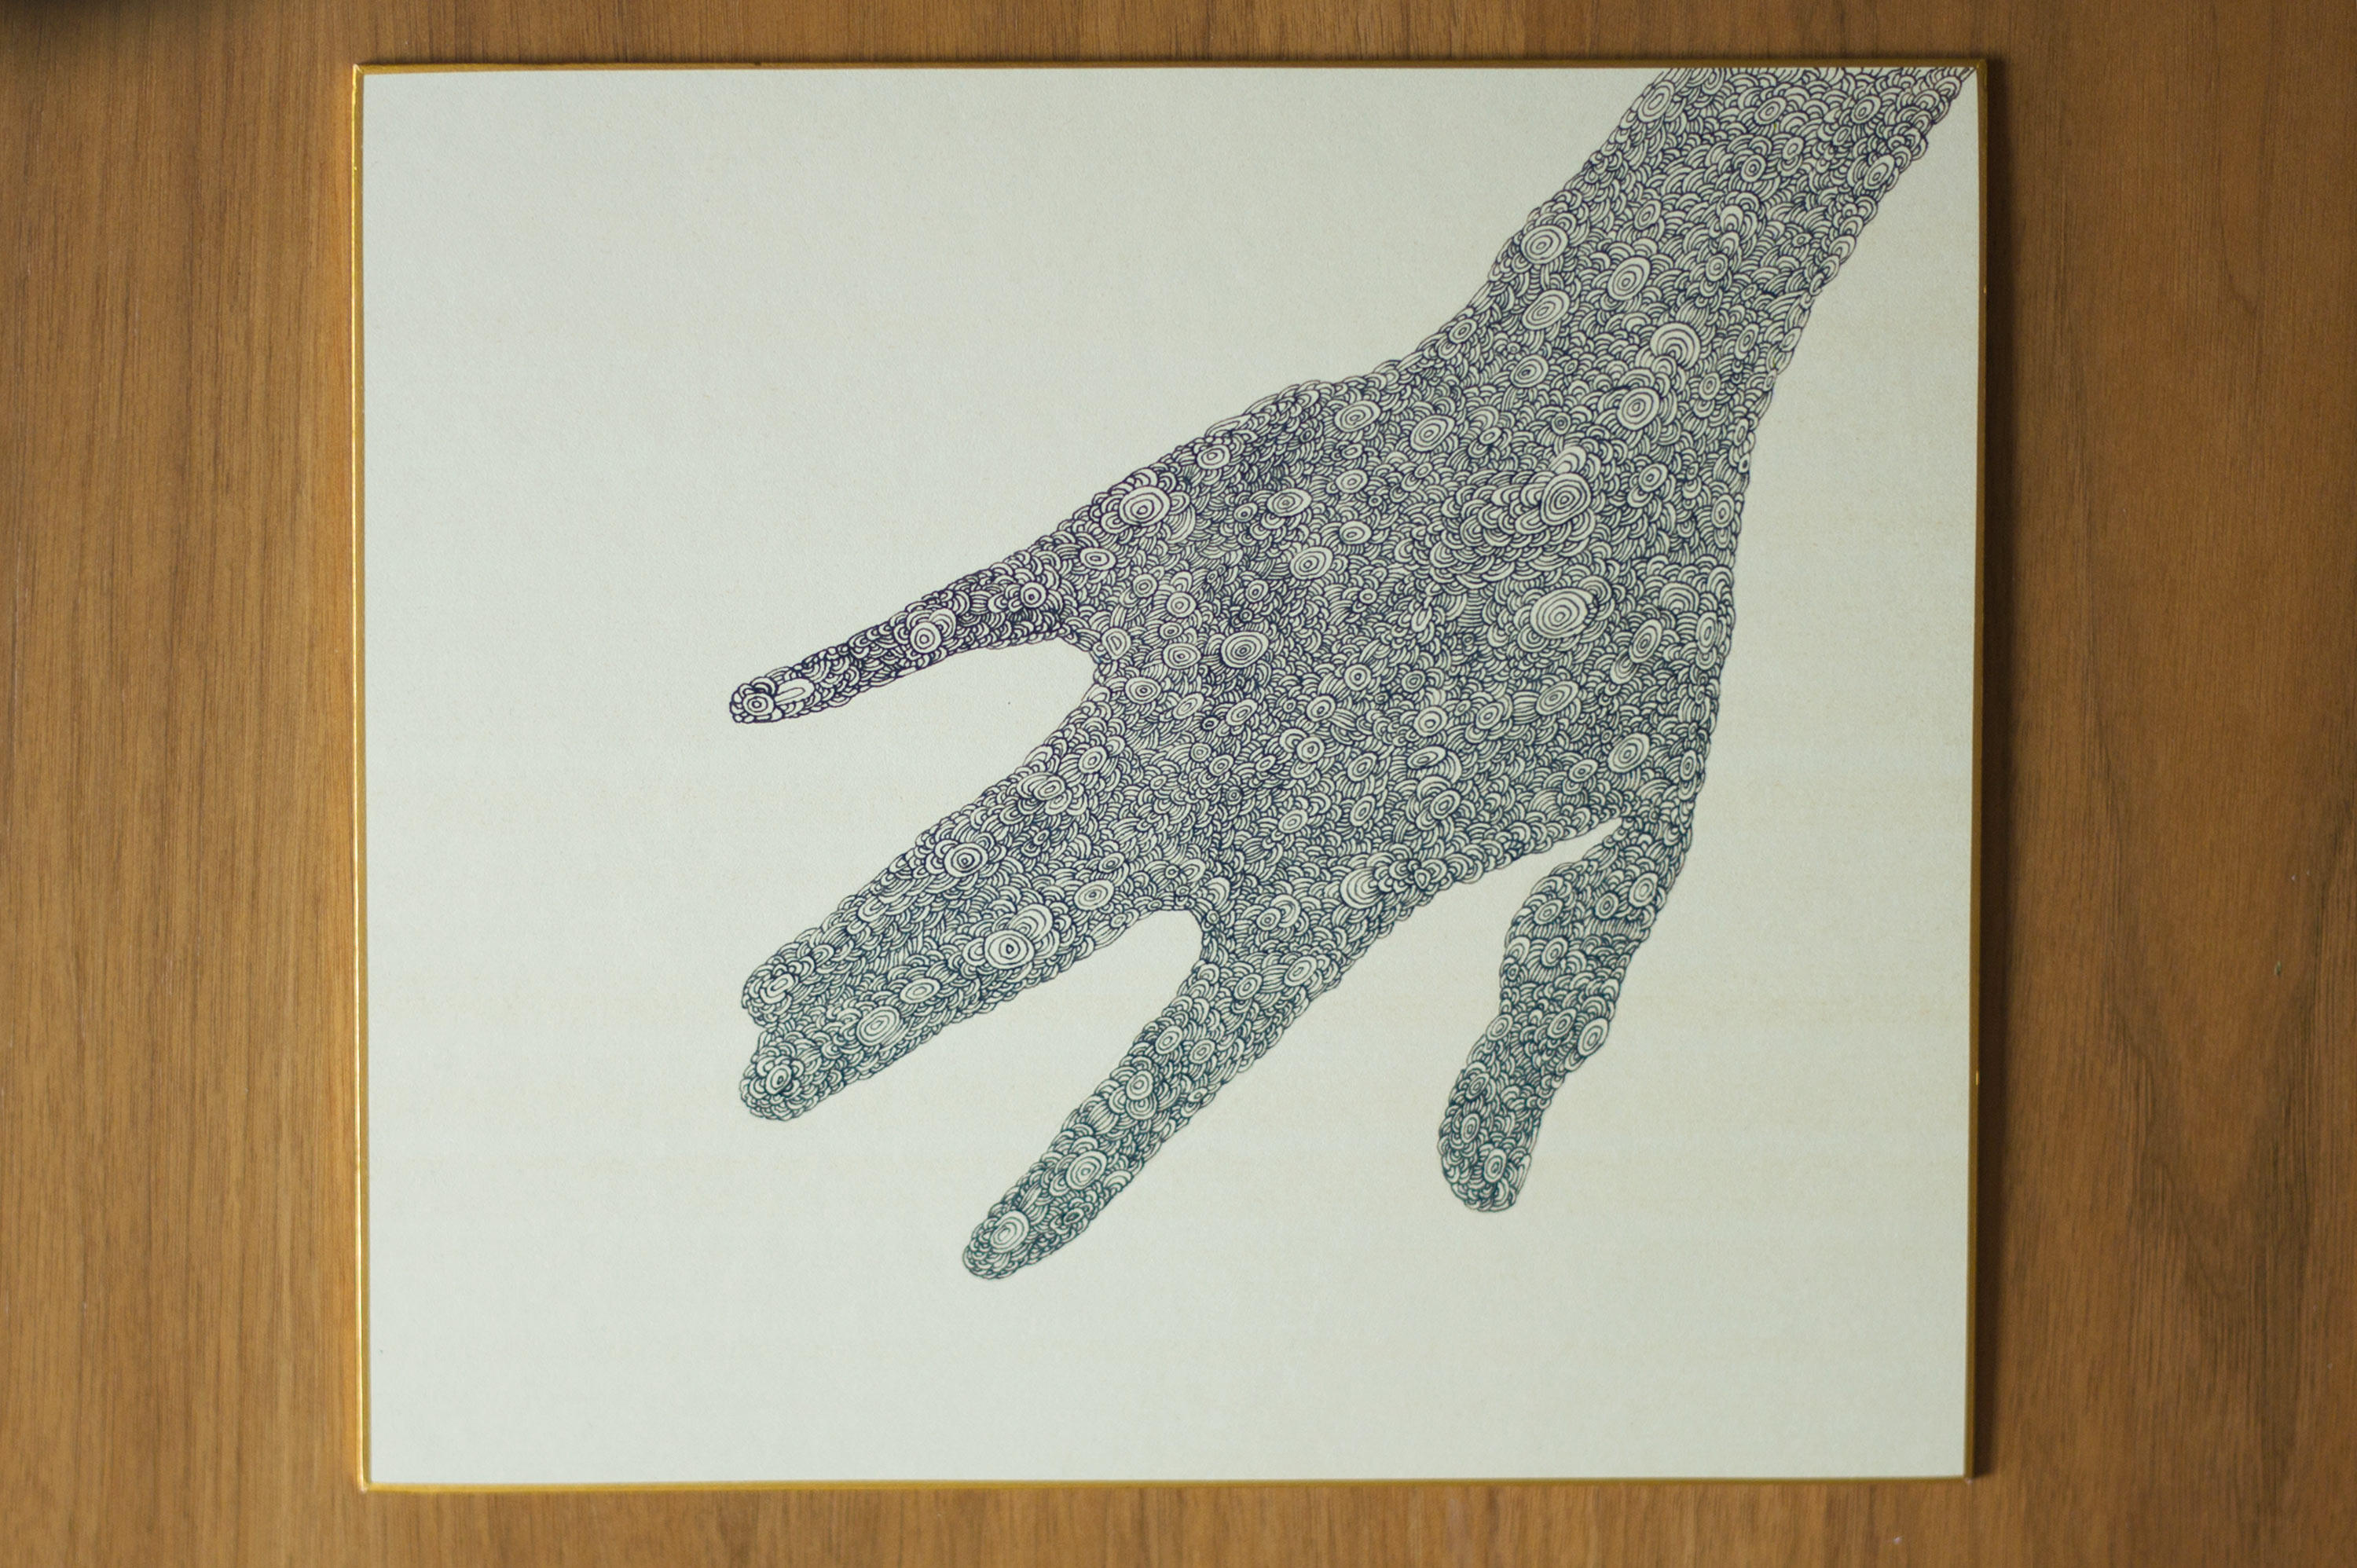 Hand Two (Ink on Shikishi Paper, 27cm x 24cm)